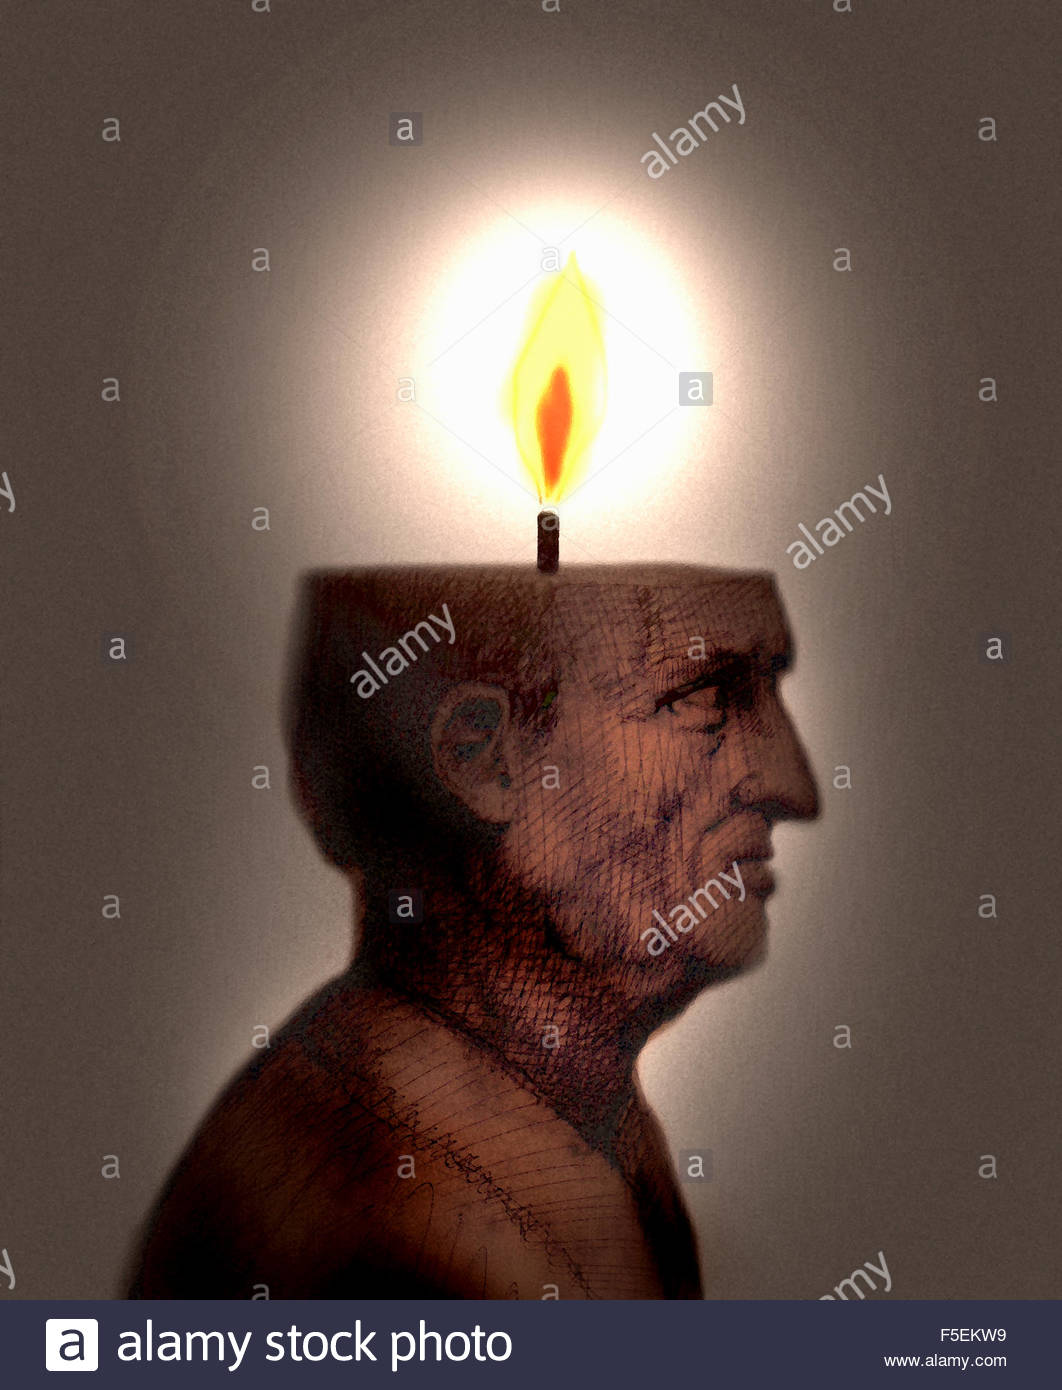 Elderly man with lit candle burning inside of head - Stock Image